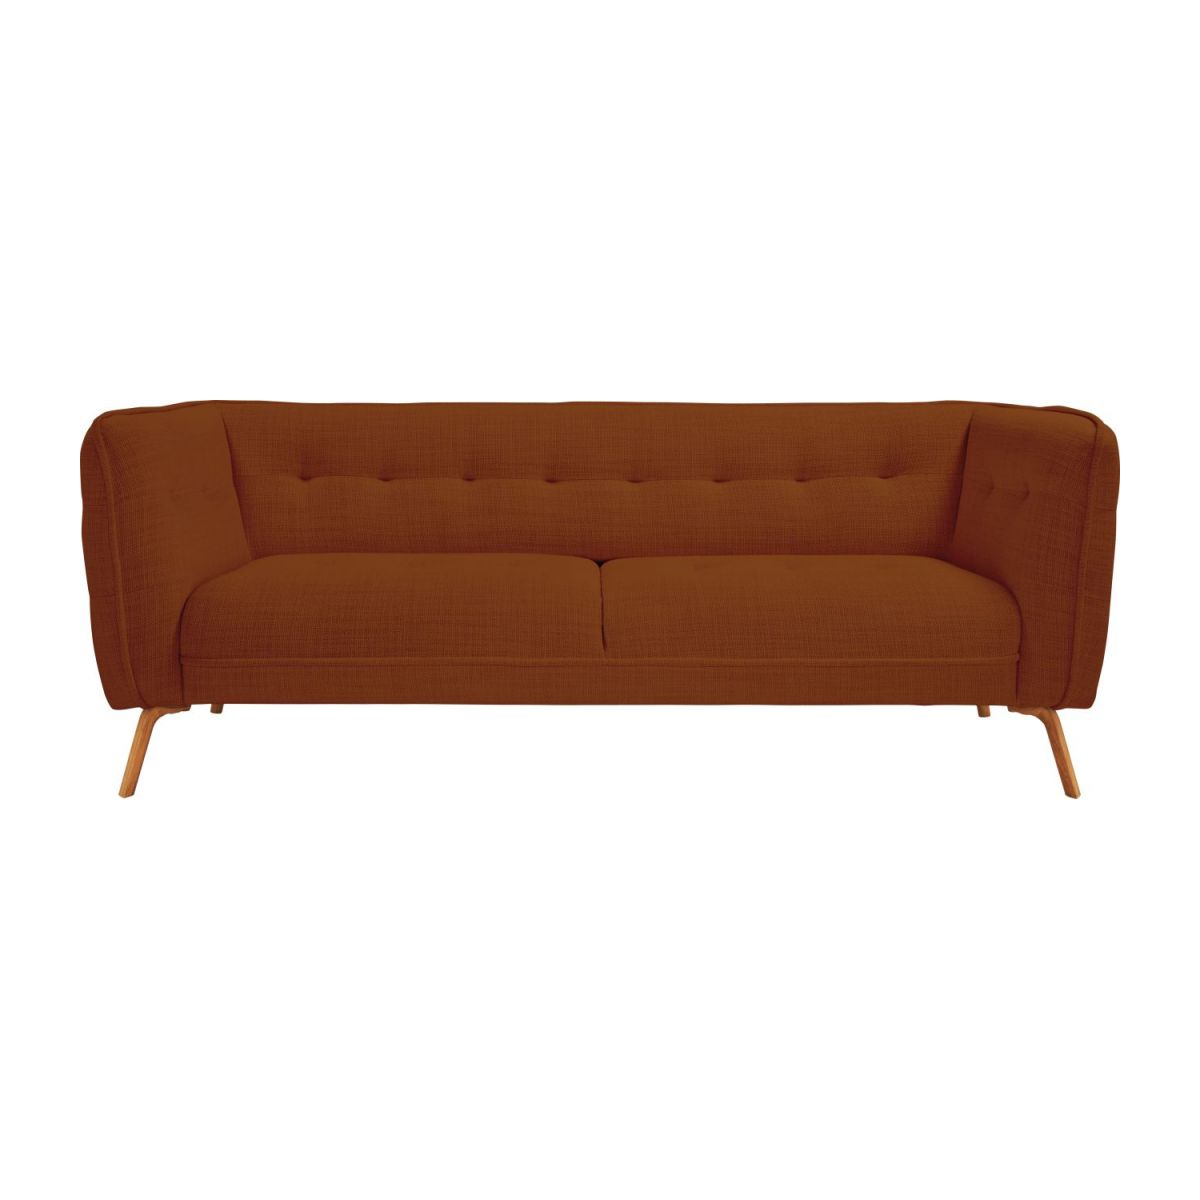 3 seater sofa in Fasoli fabric, warm red rock and oak legs n°2